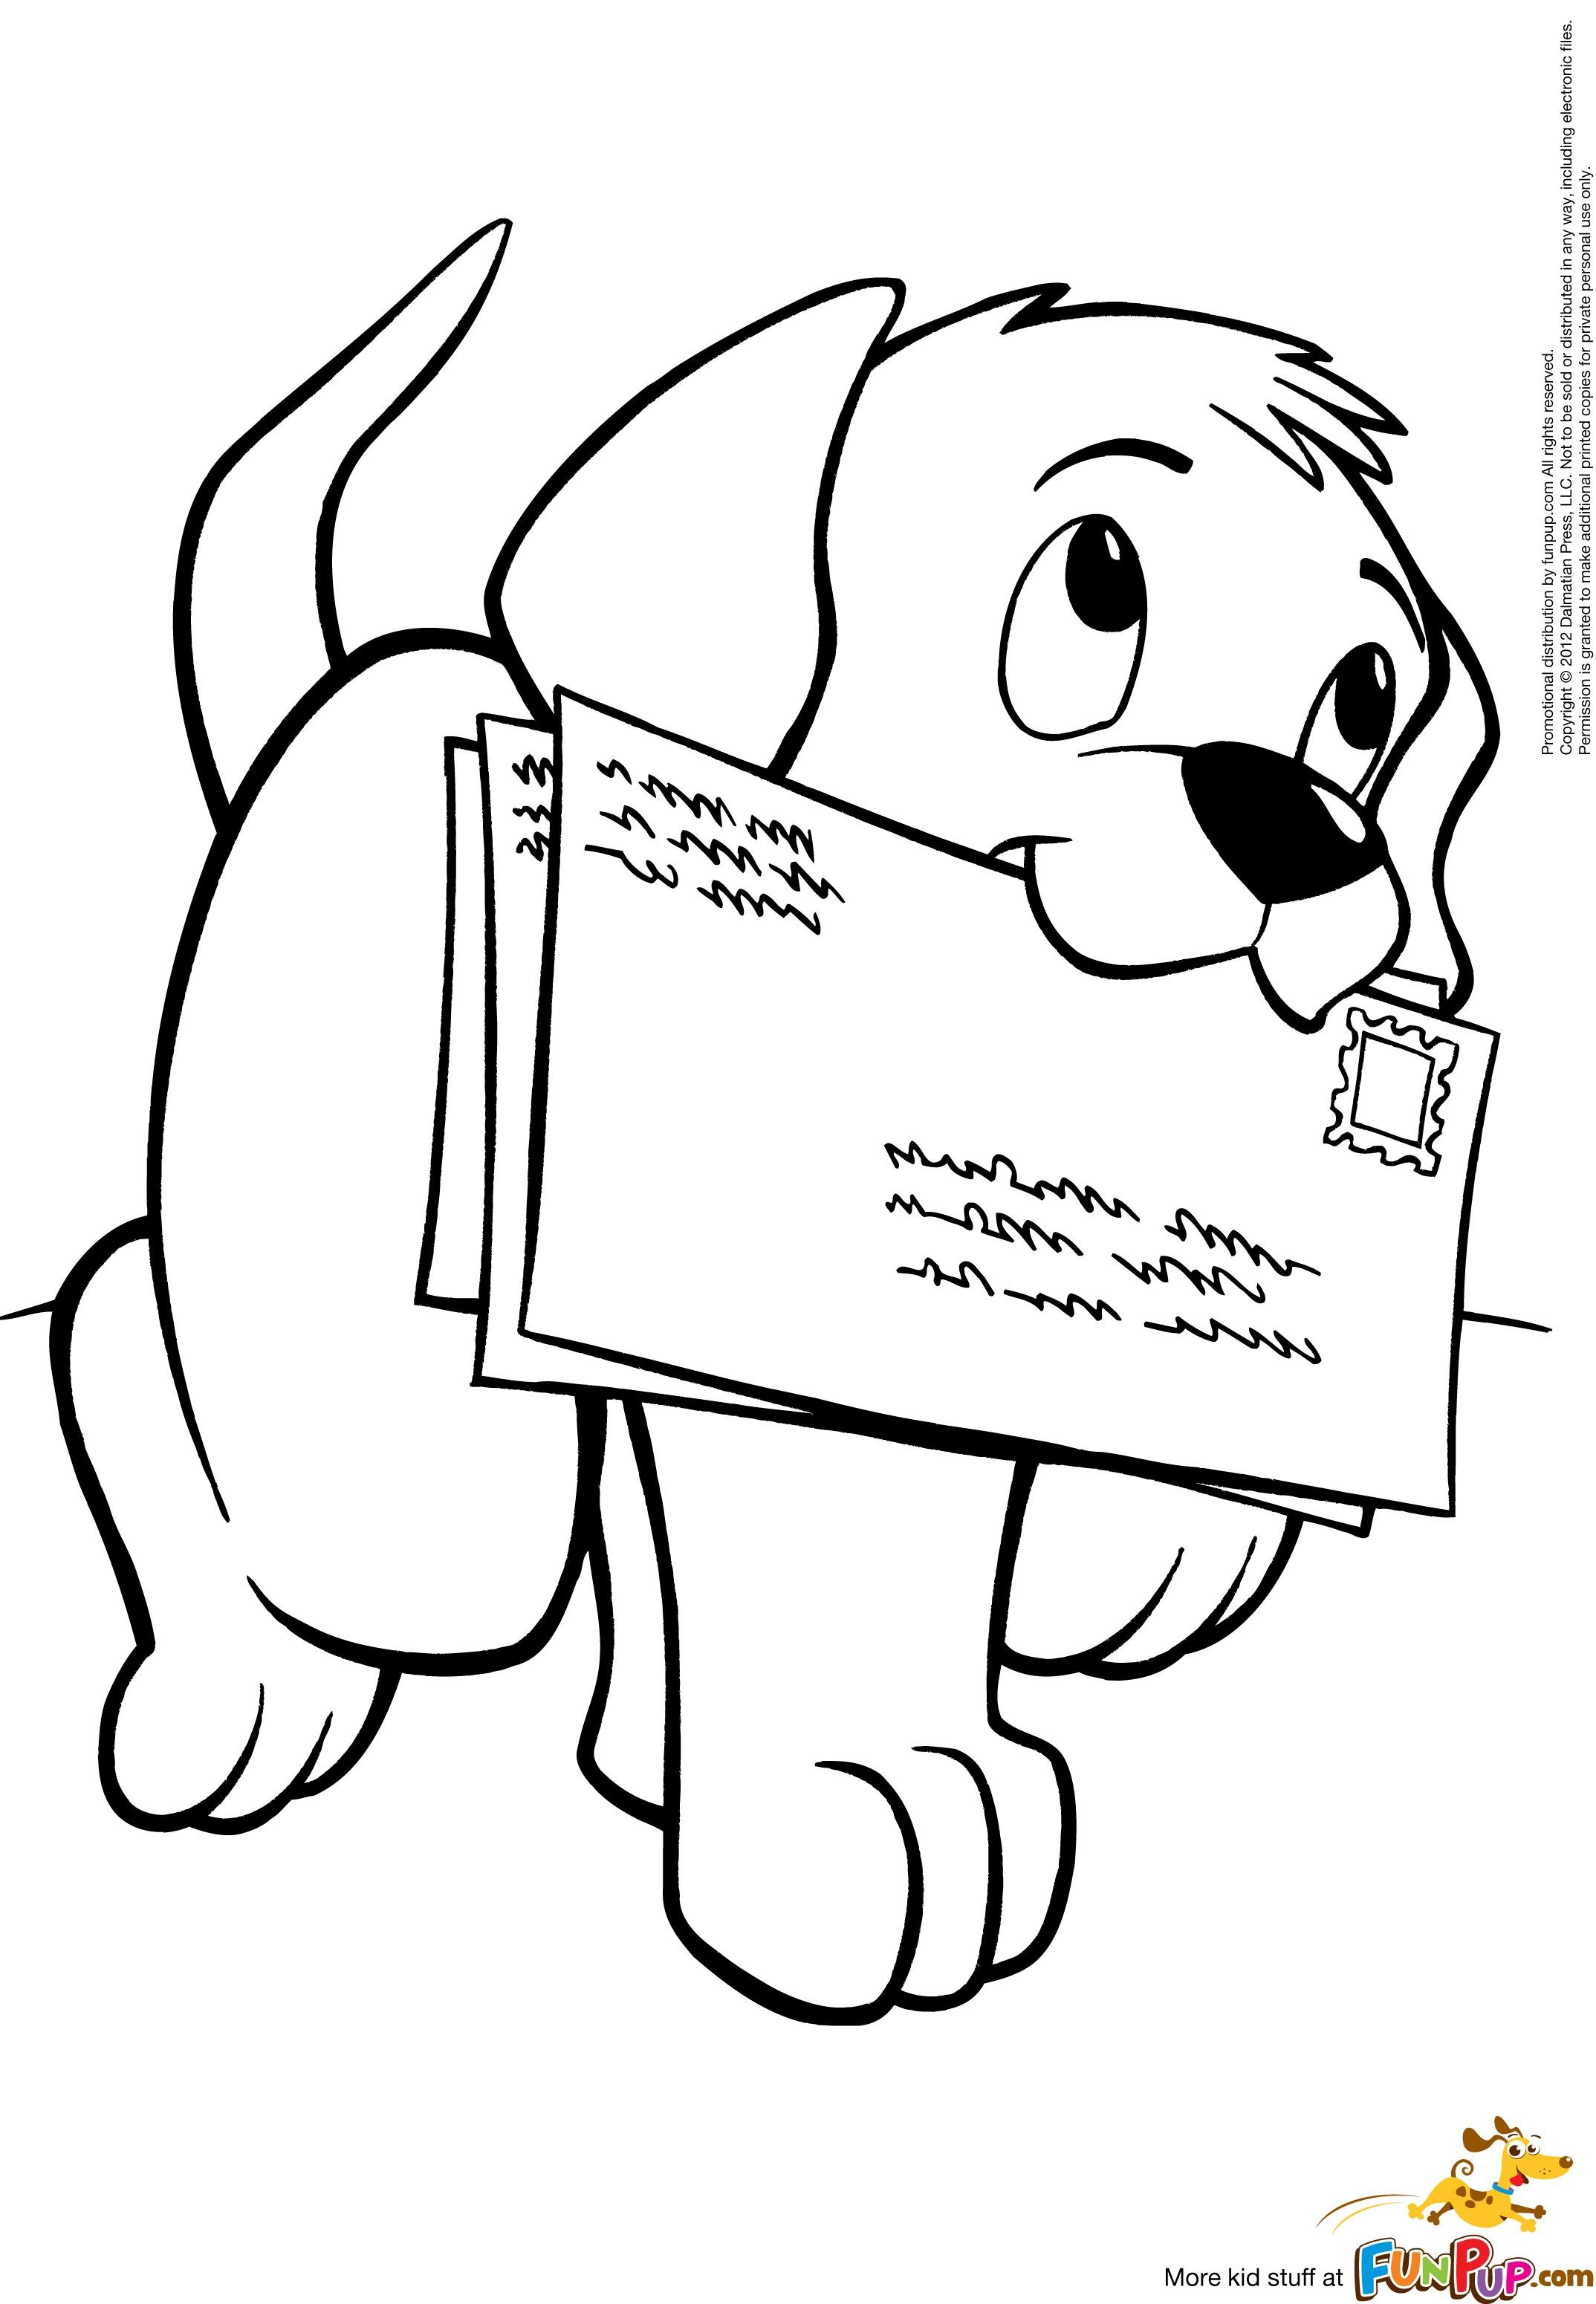 Printable Puppy Coloring Pages Free